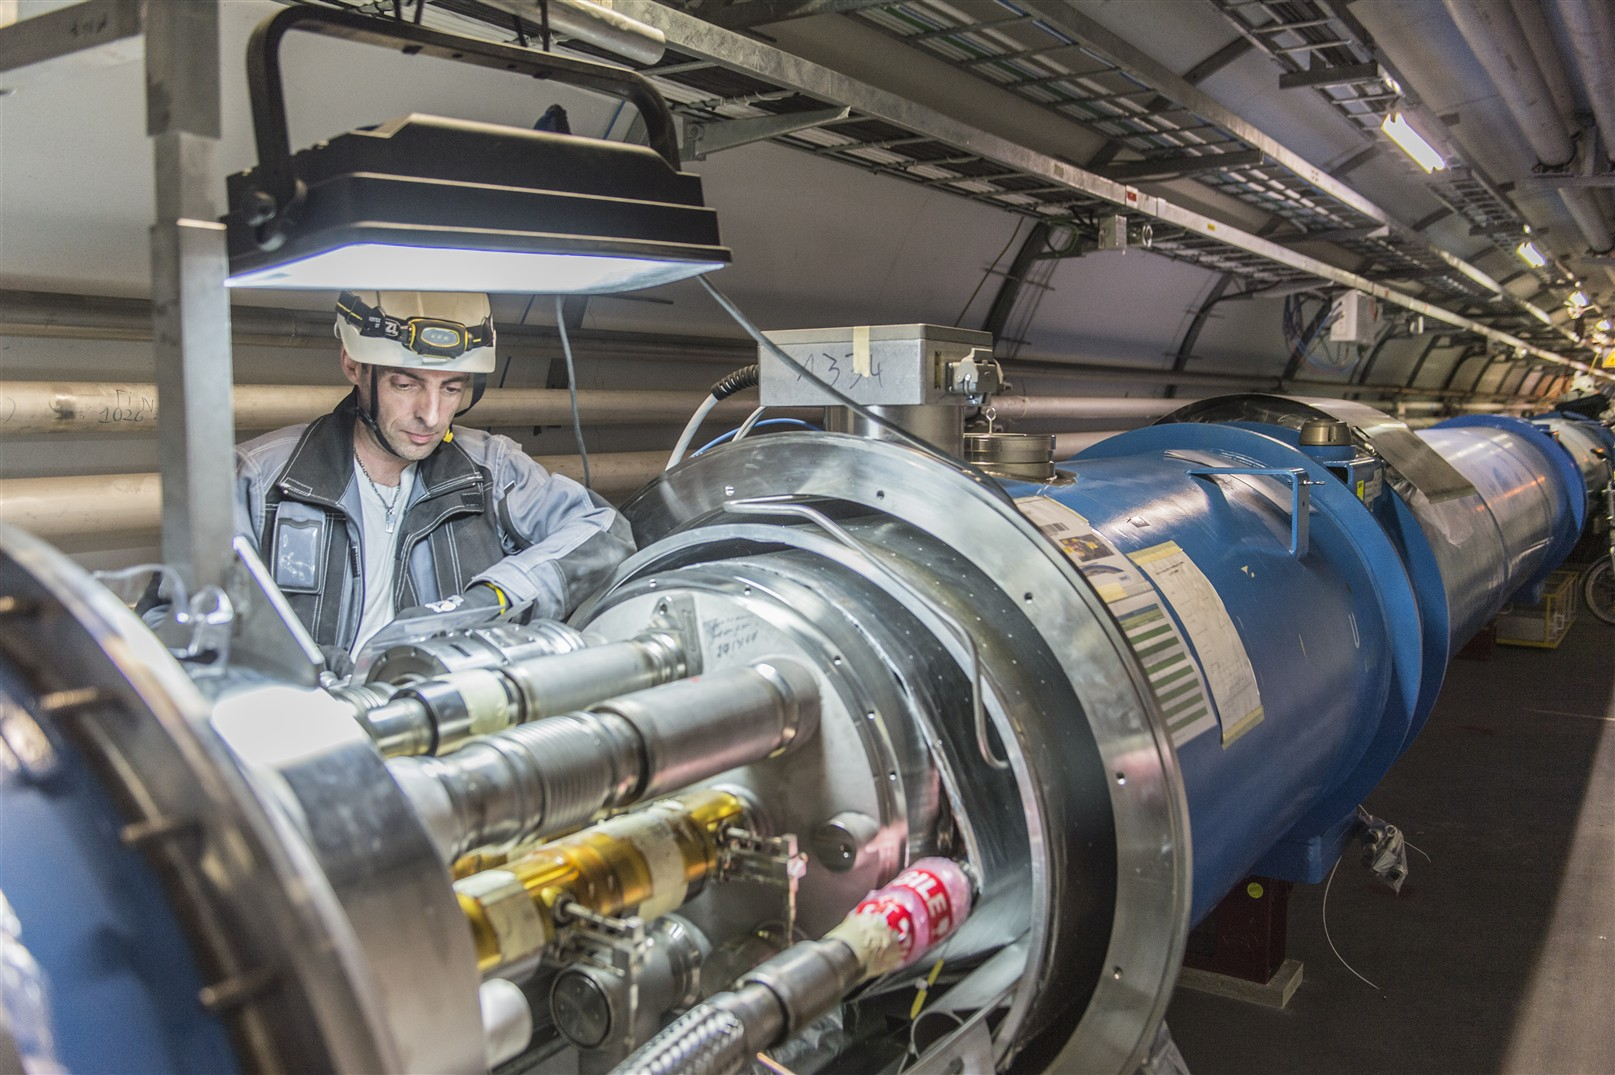 A CERN engineer inspecting machinery. Credit: CERN